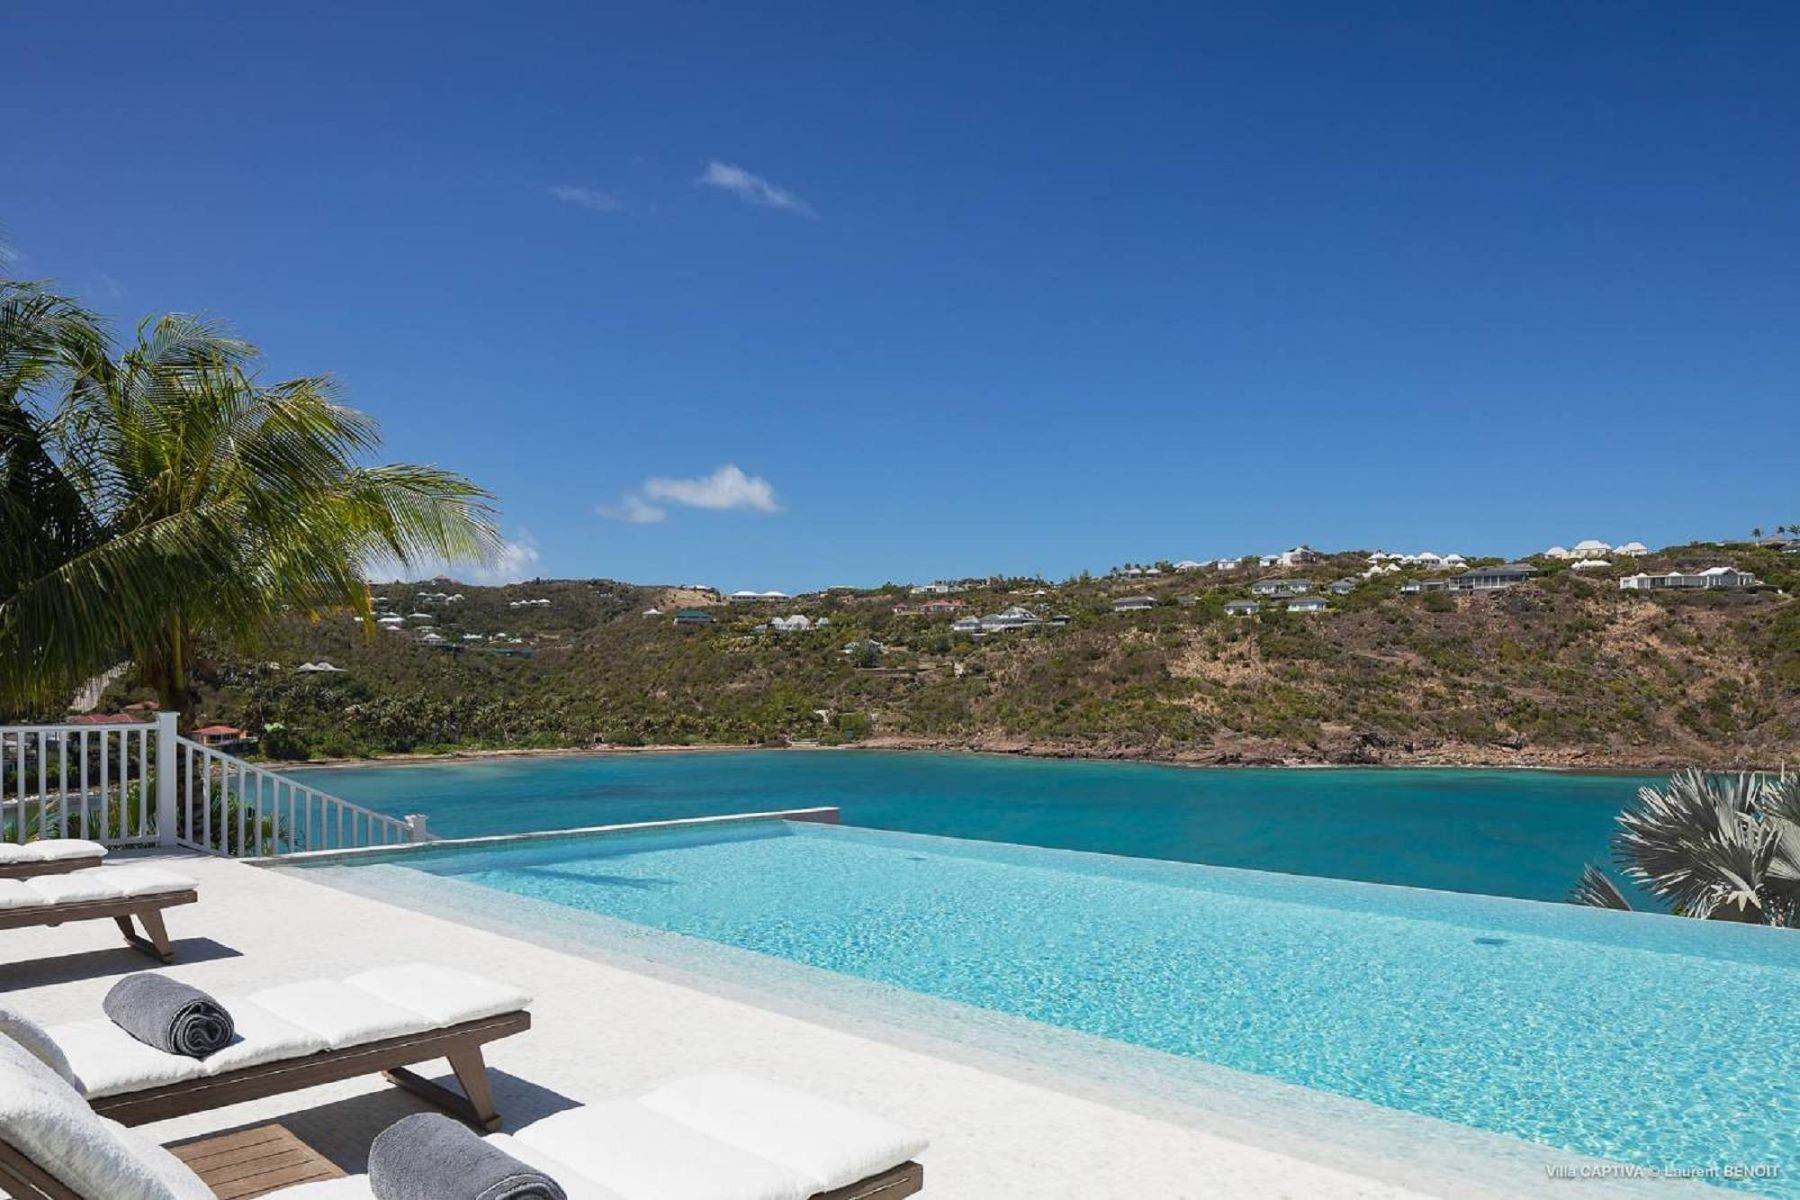 Single Family Homes for Sale at Villla Captiva Marigot, Other St. Barthelemy, 97133 St. Barthelemy